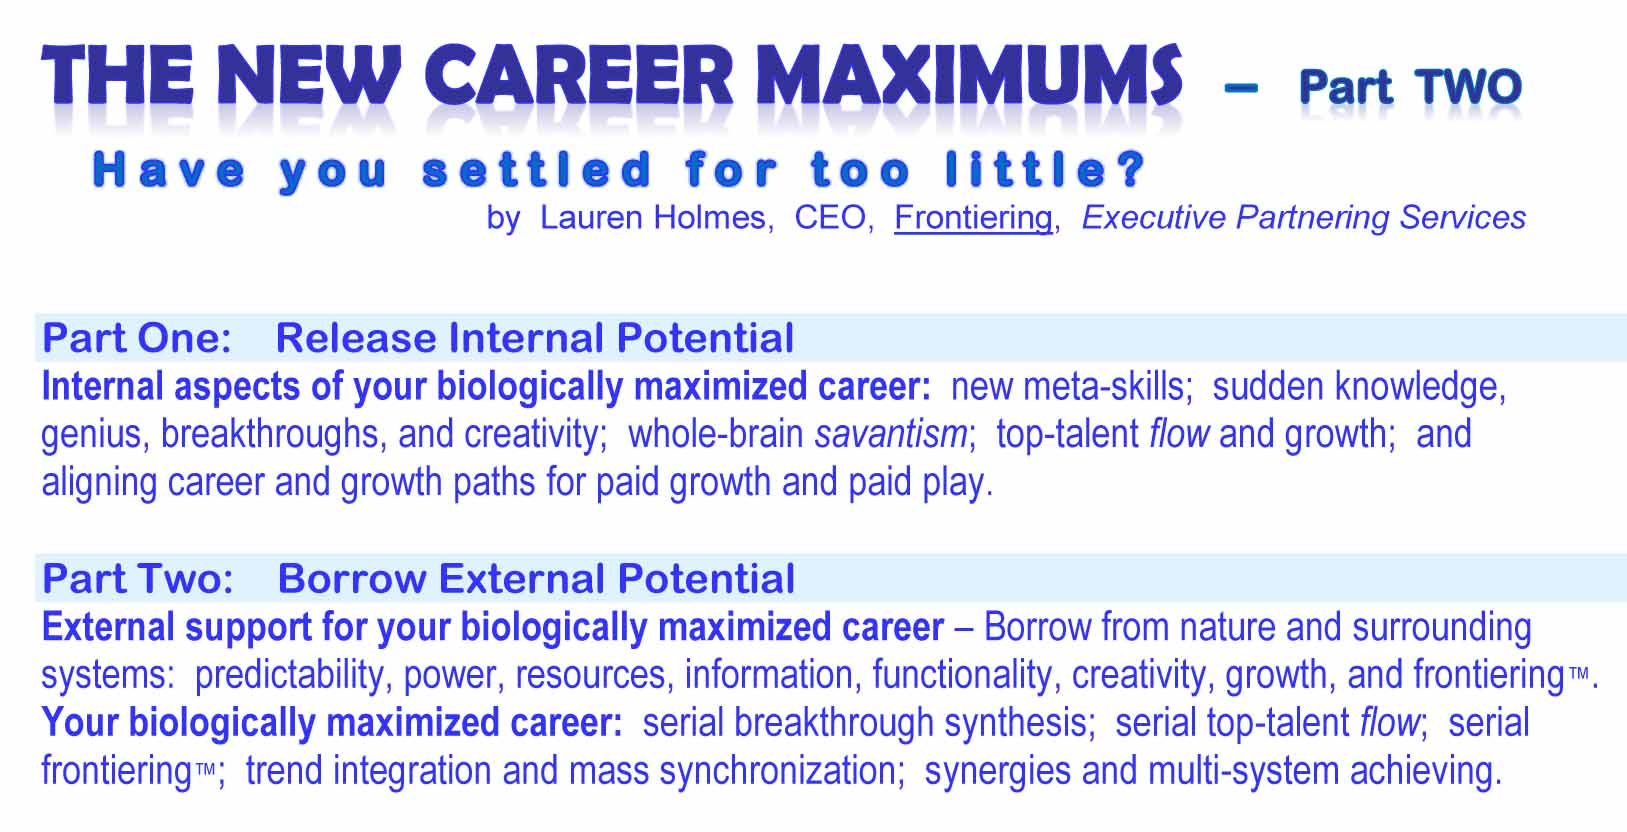 New Career Maximums  - Part Two